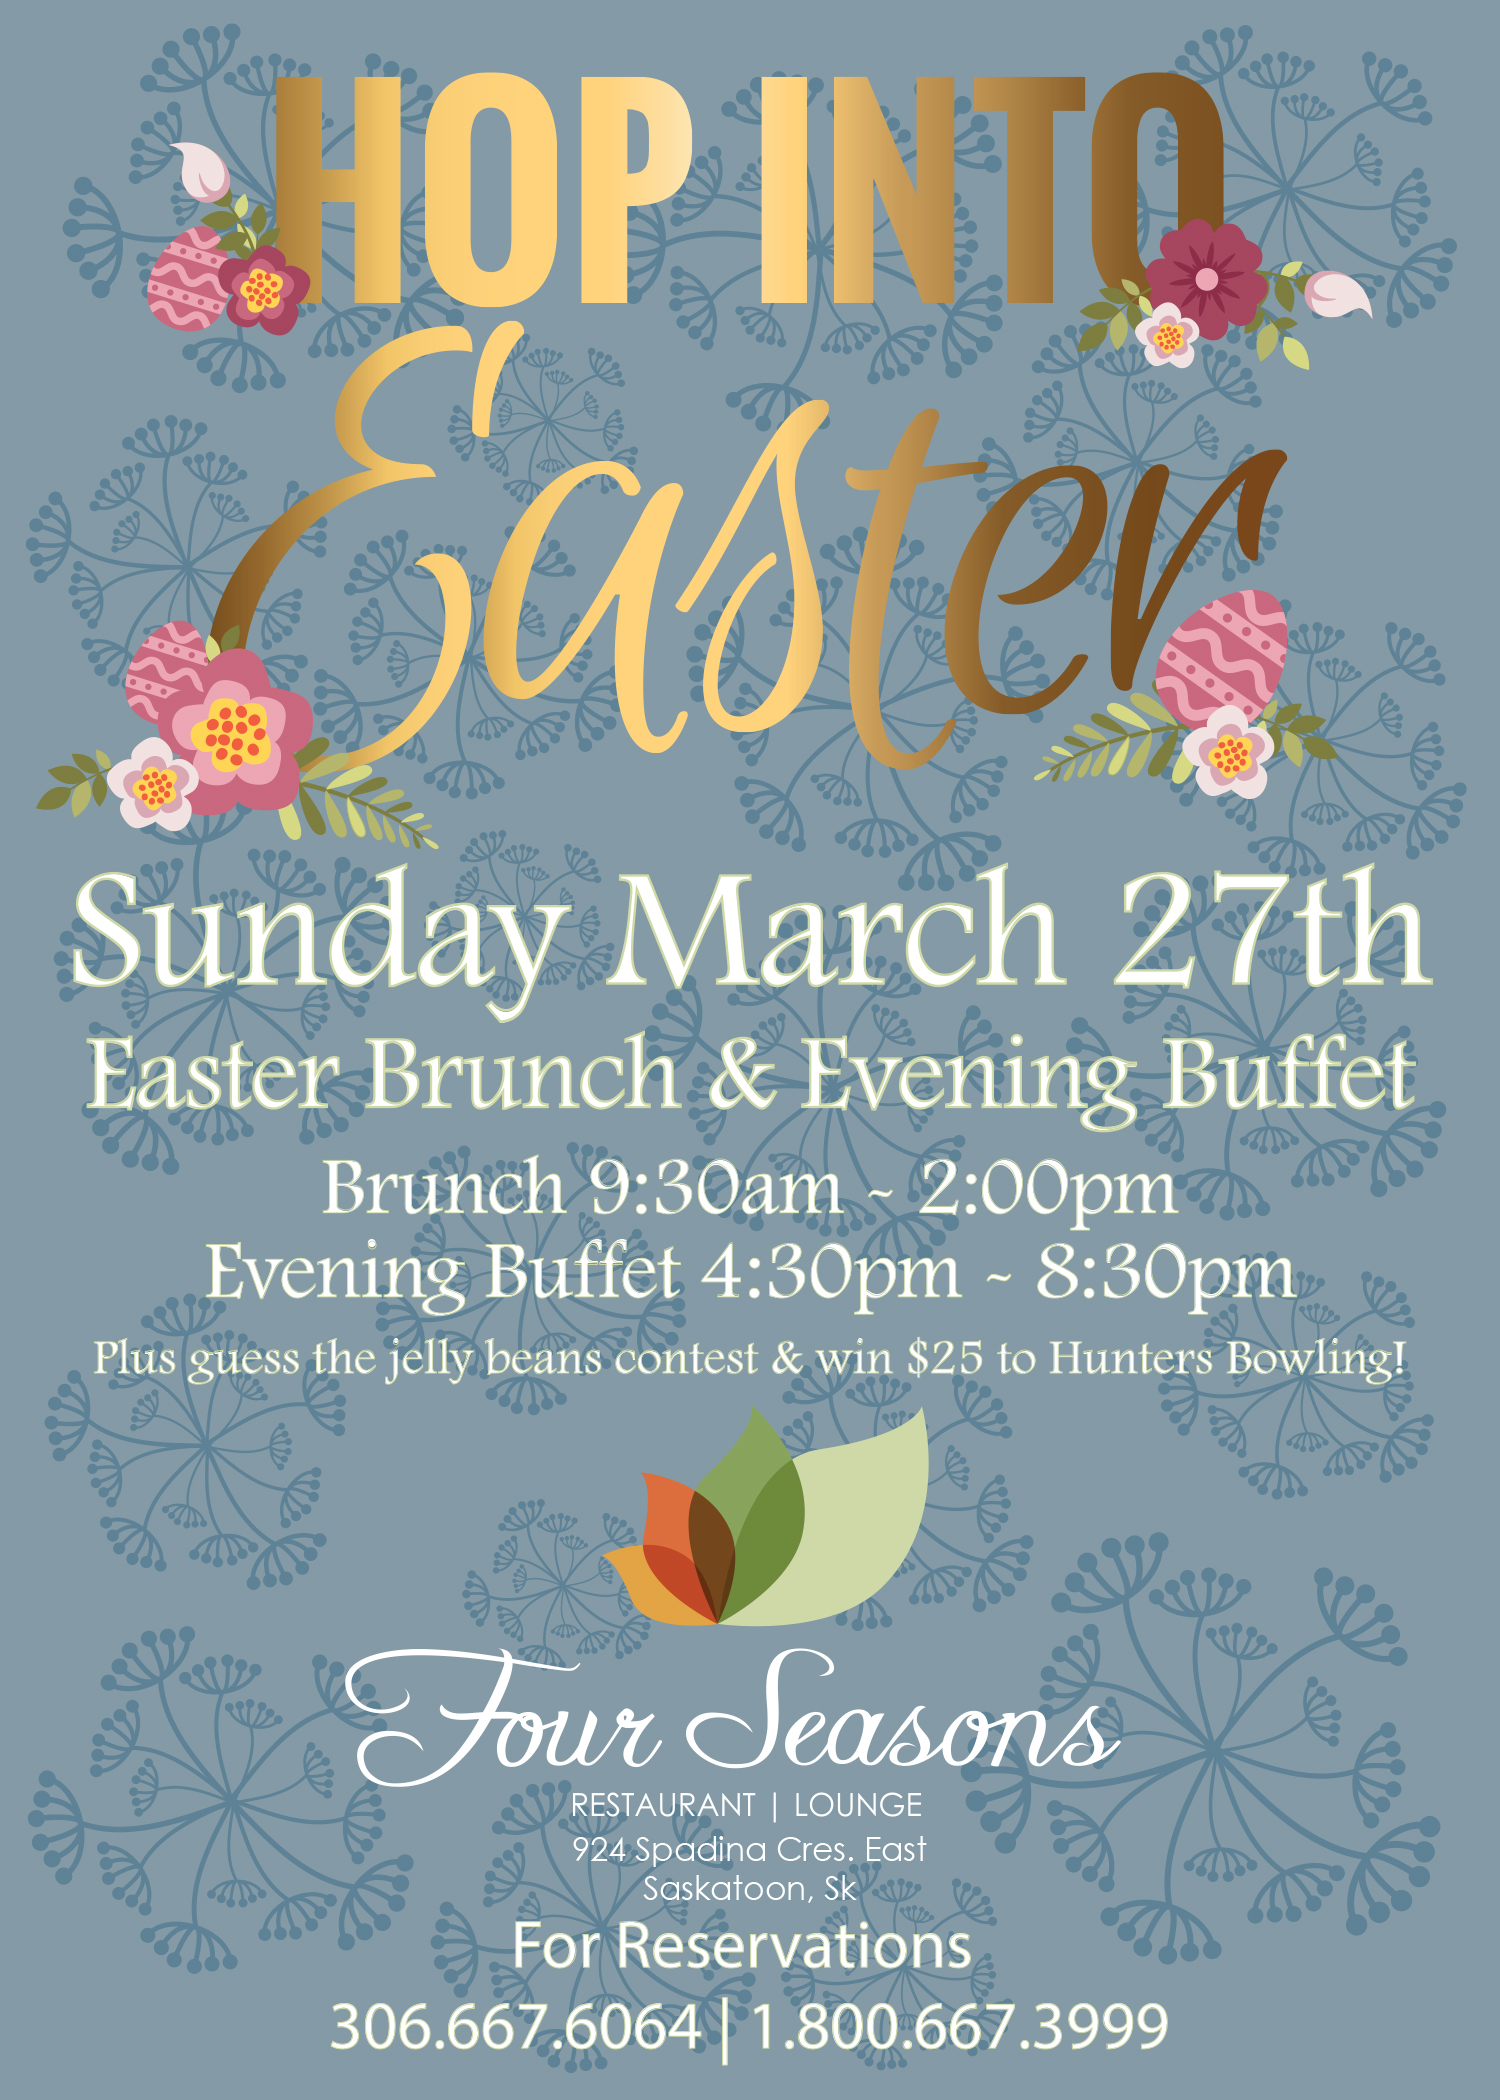 Park Town Hotel Saskatoon Hop Into Easter At The Park Town Hotel